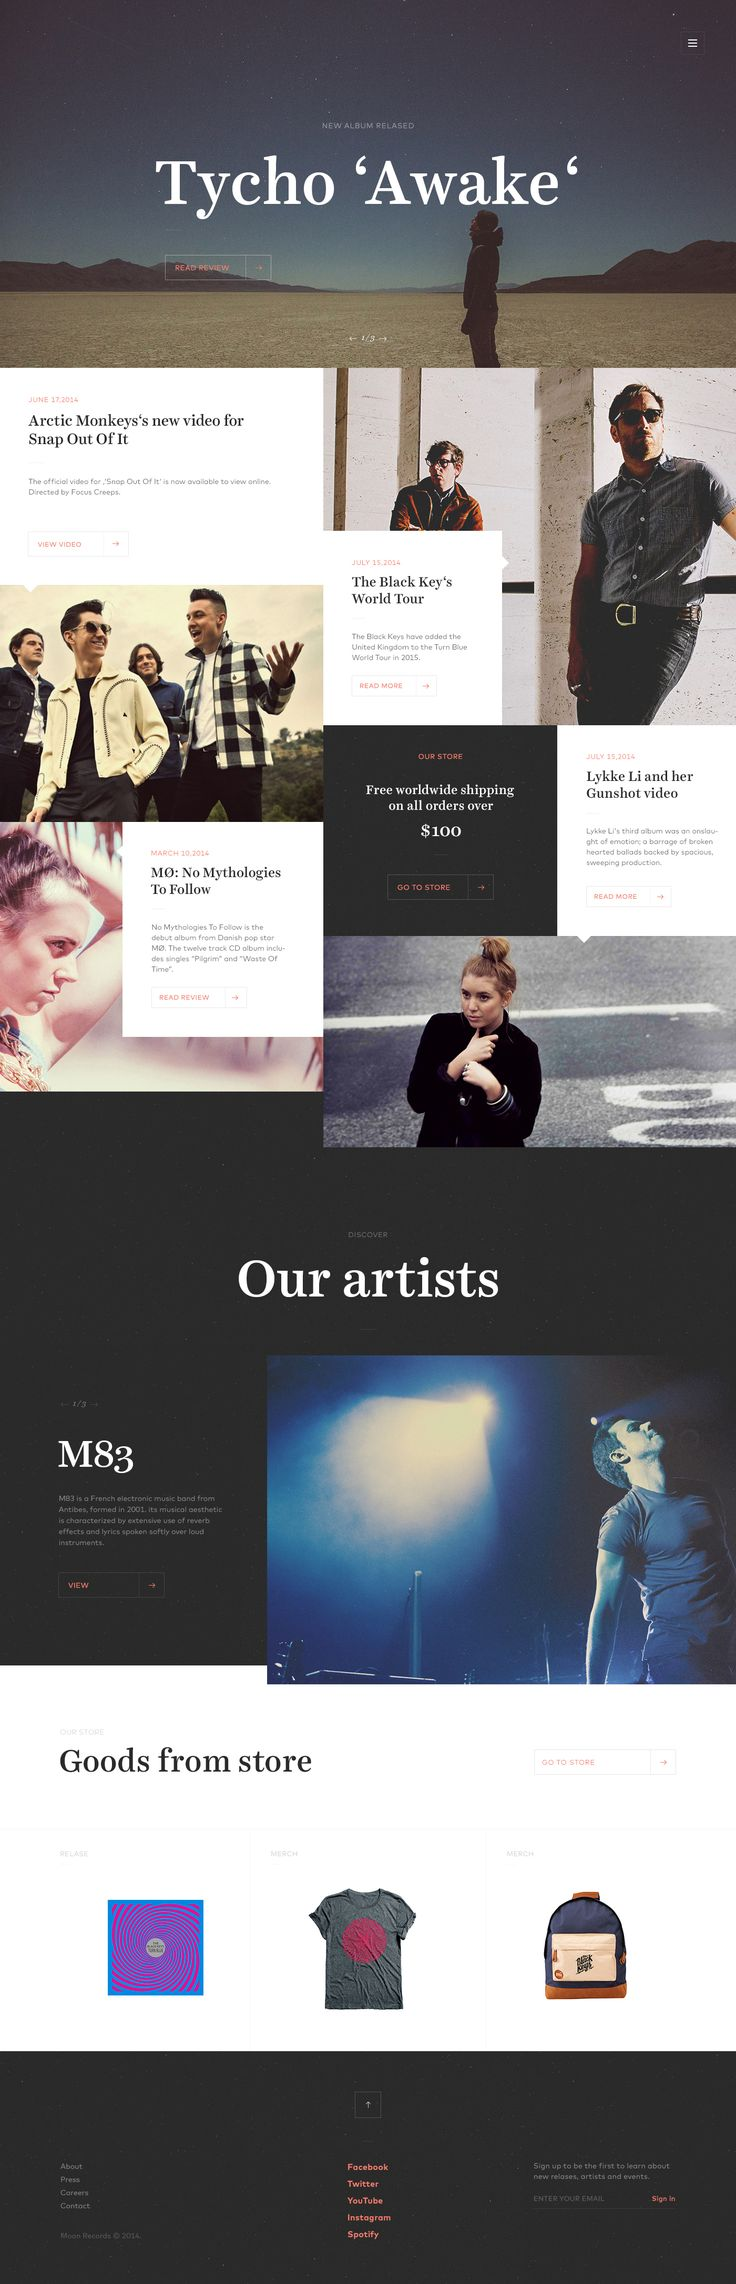 Record Label Website - Homepage by Jaromir Kveton